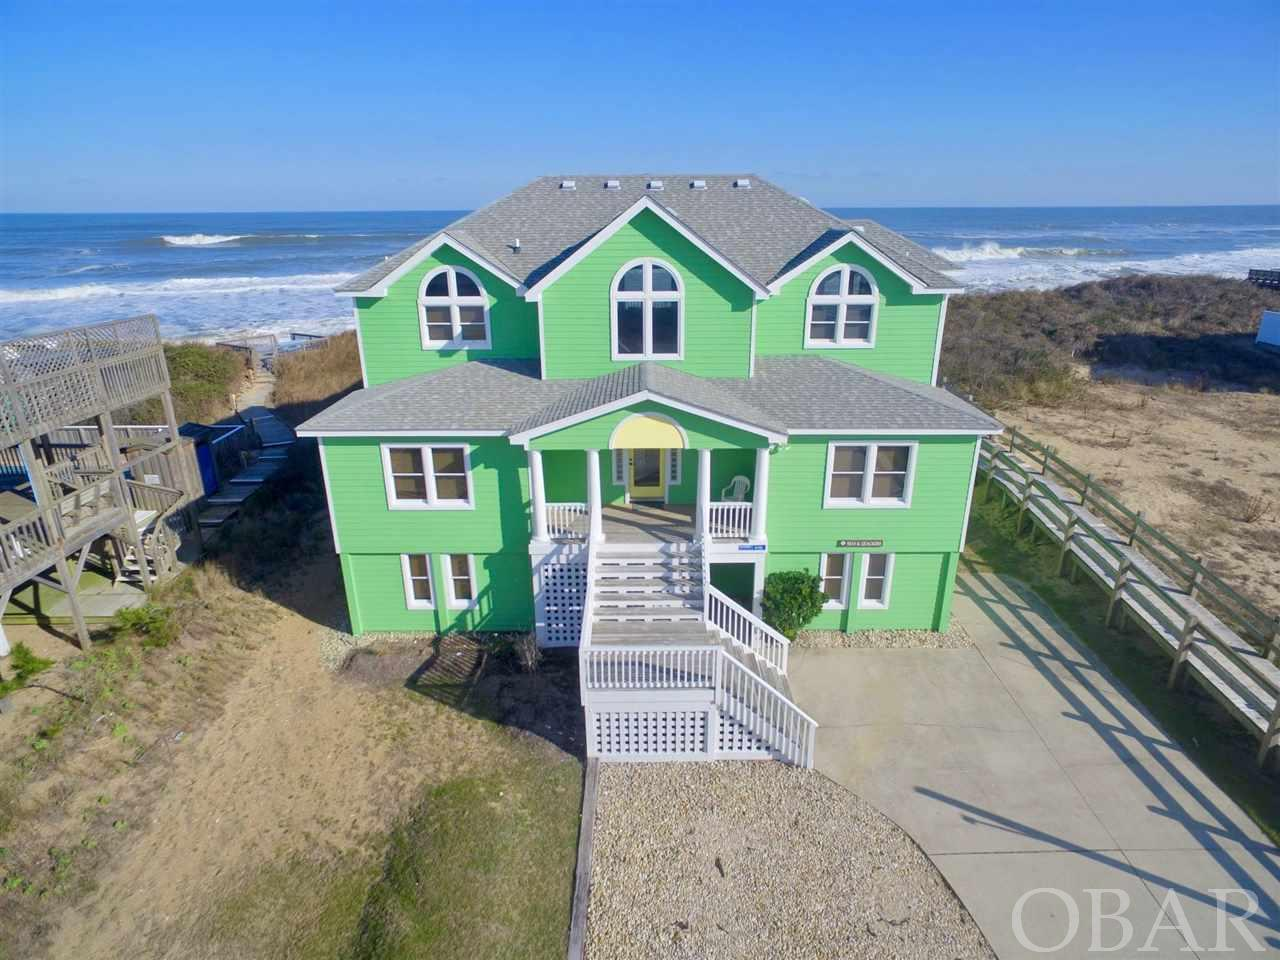 140 Sea Eider Court, Duck, NC 27949, 9 Bedrooms Bedrooms, ,8 BathroomsBathrooms,Residential,For sale,Sea Eider Court,103307